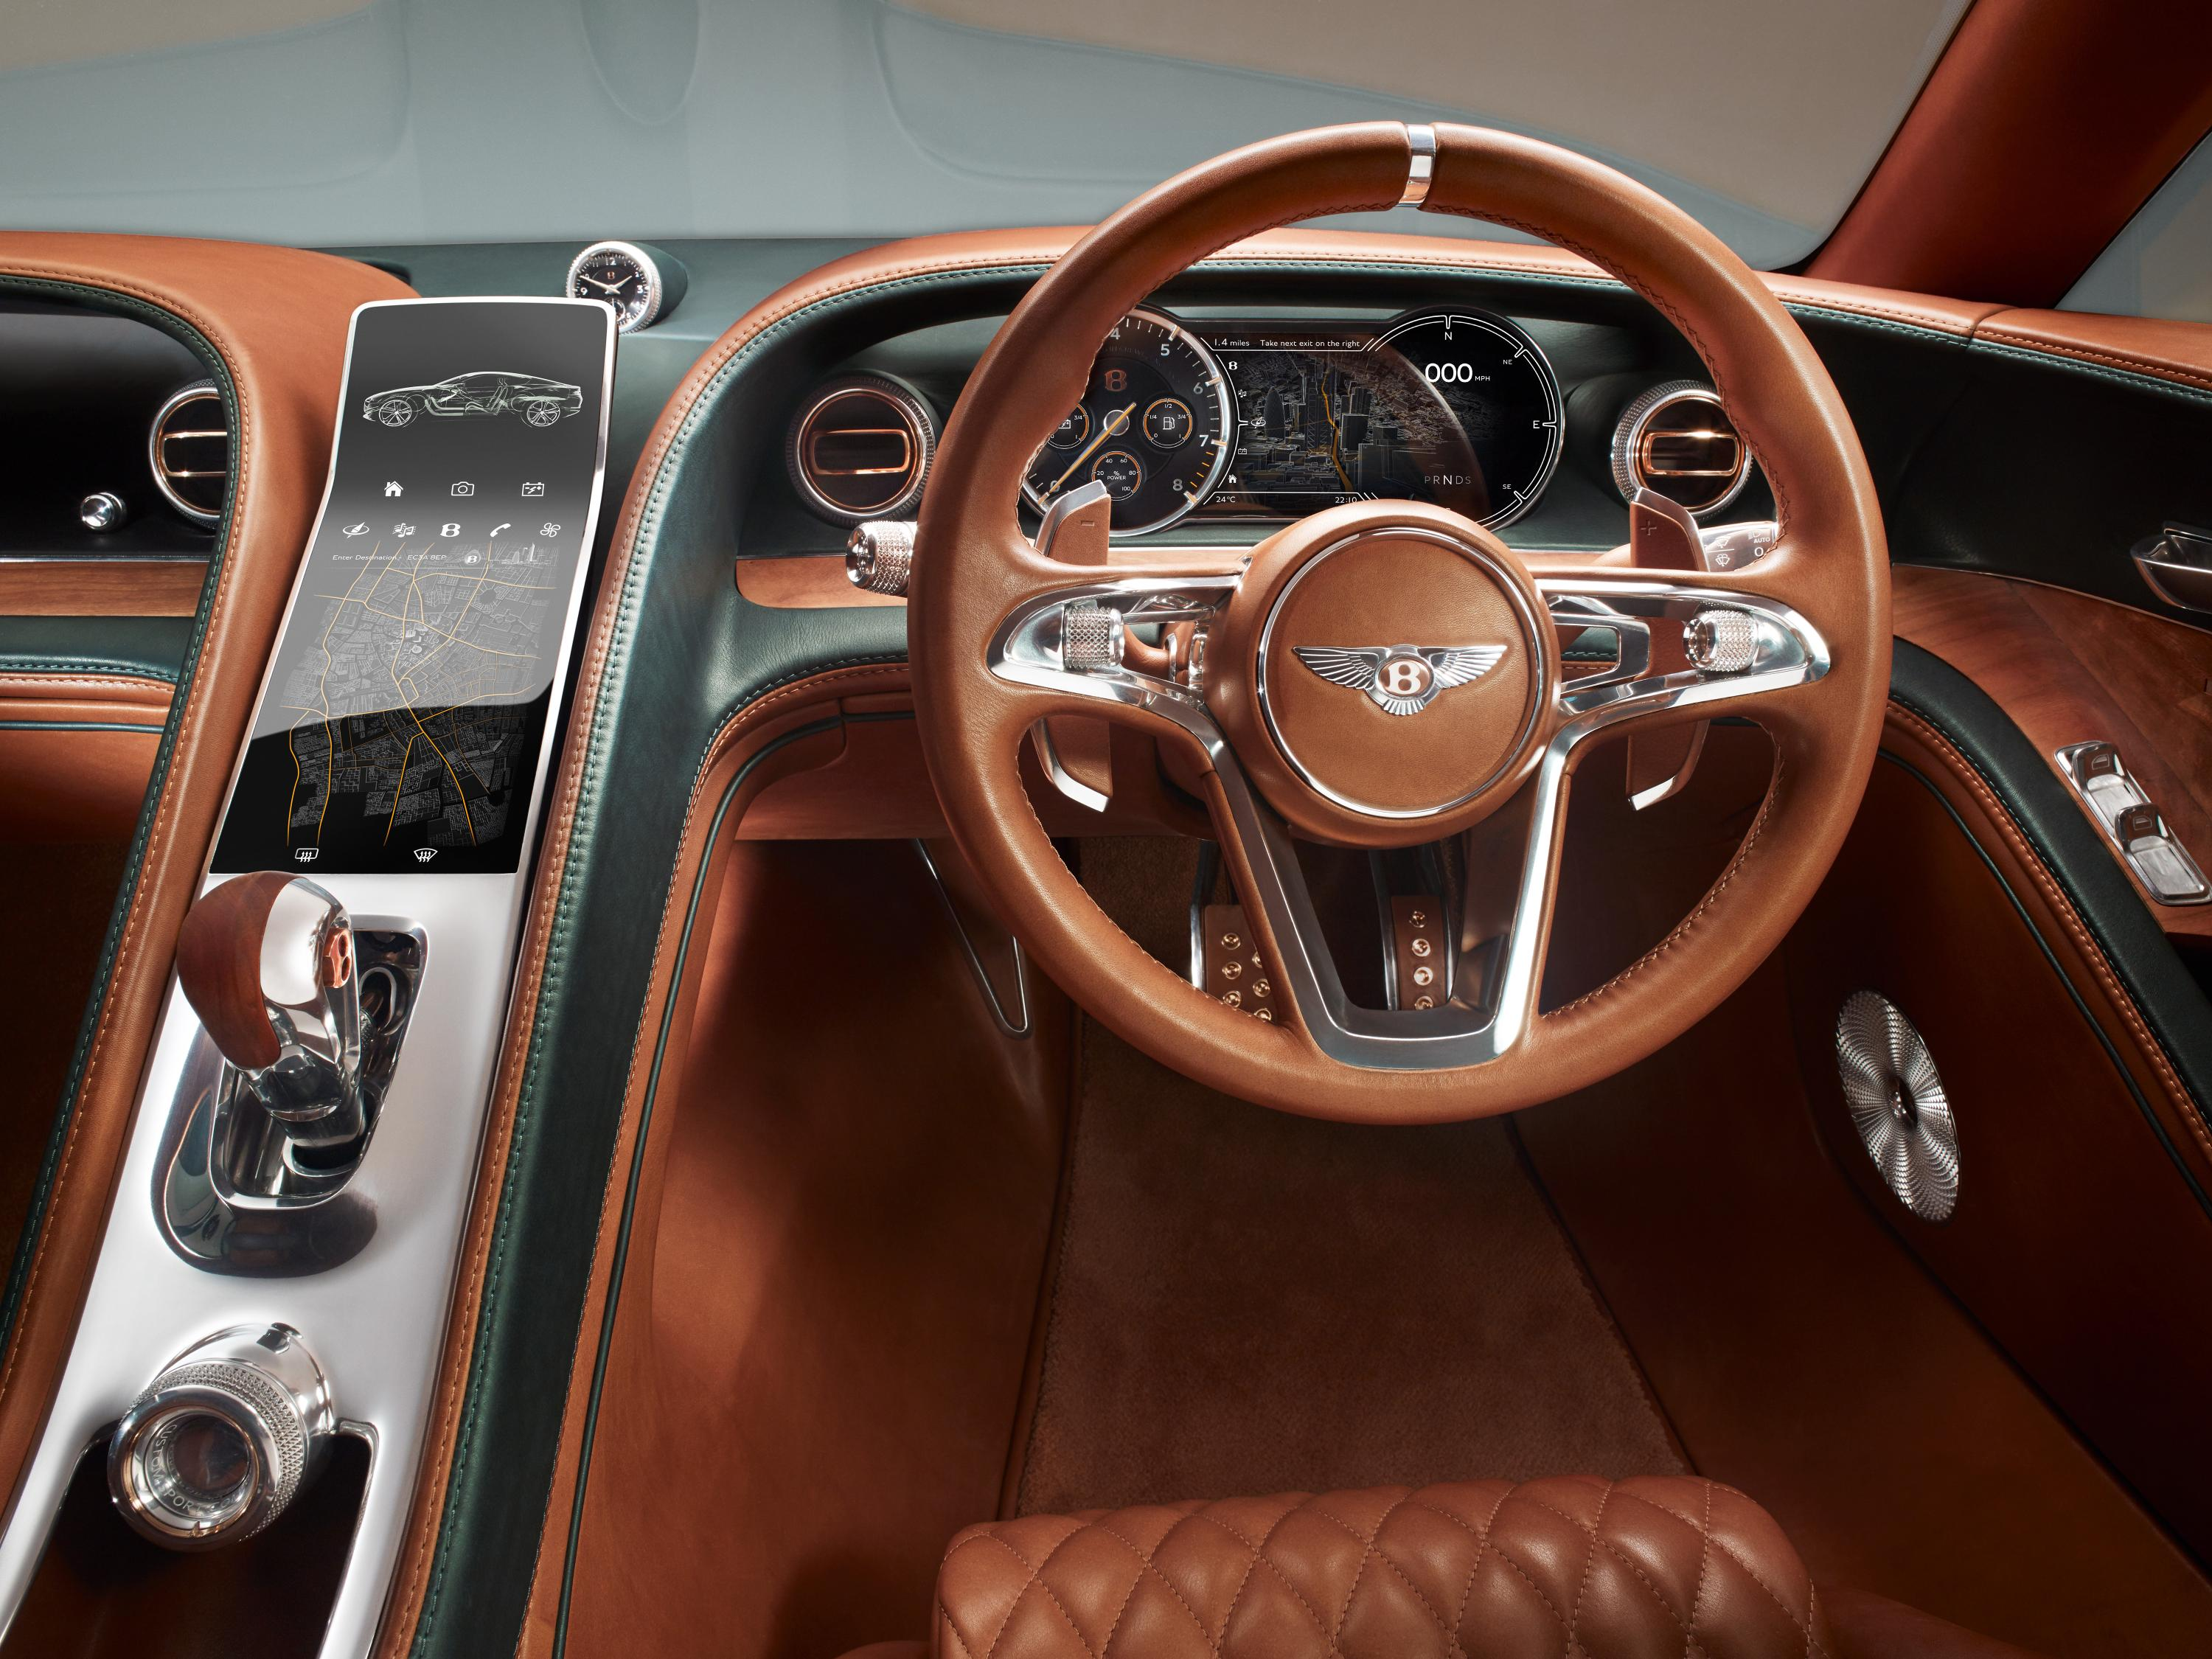 2015 Bentley EXP 10 Speed 6 Concept photo - 3